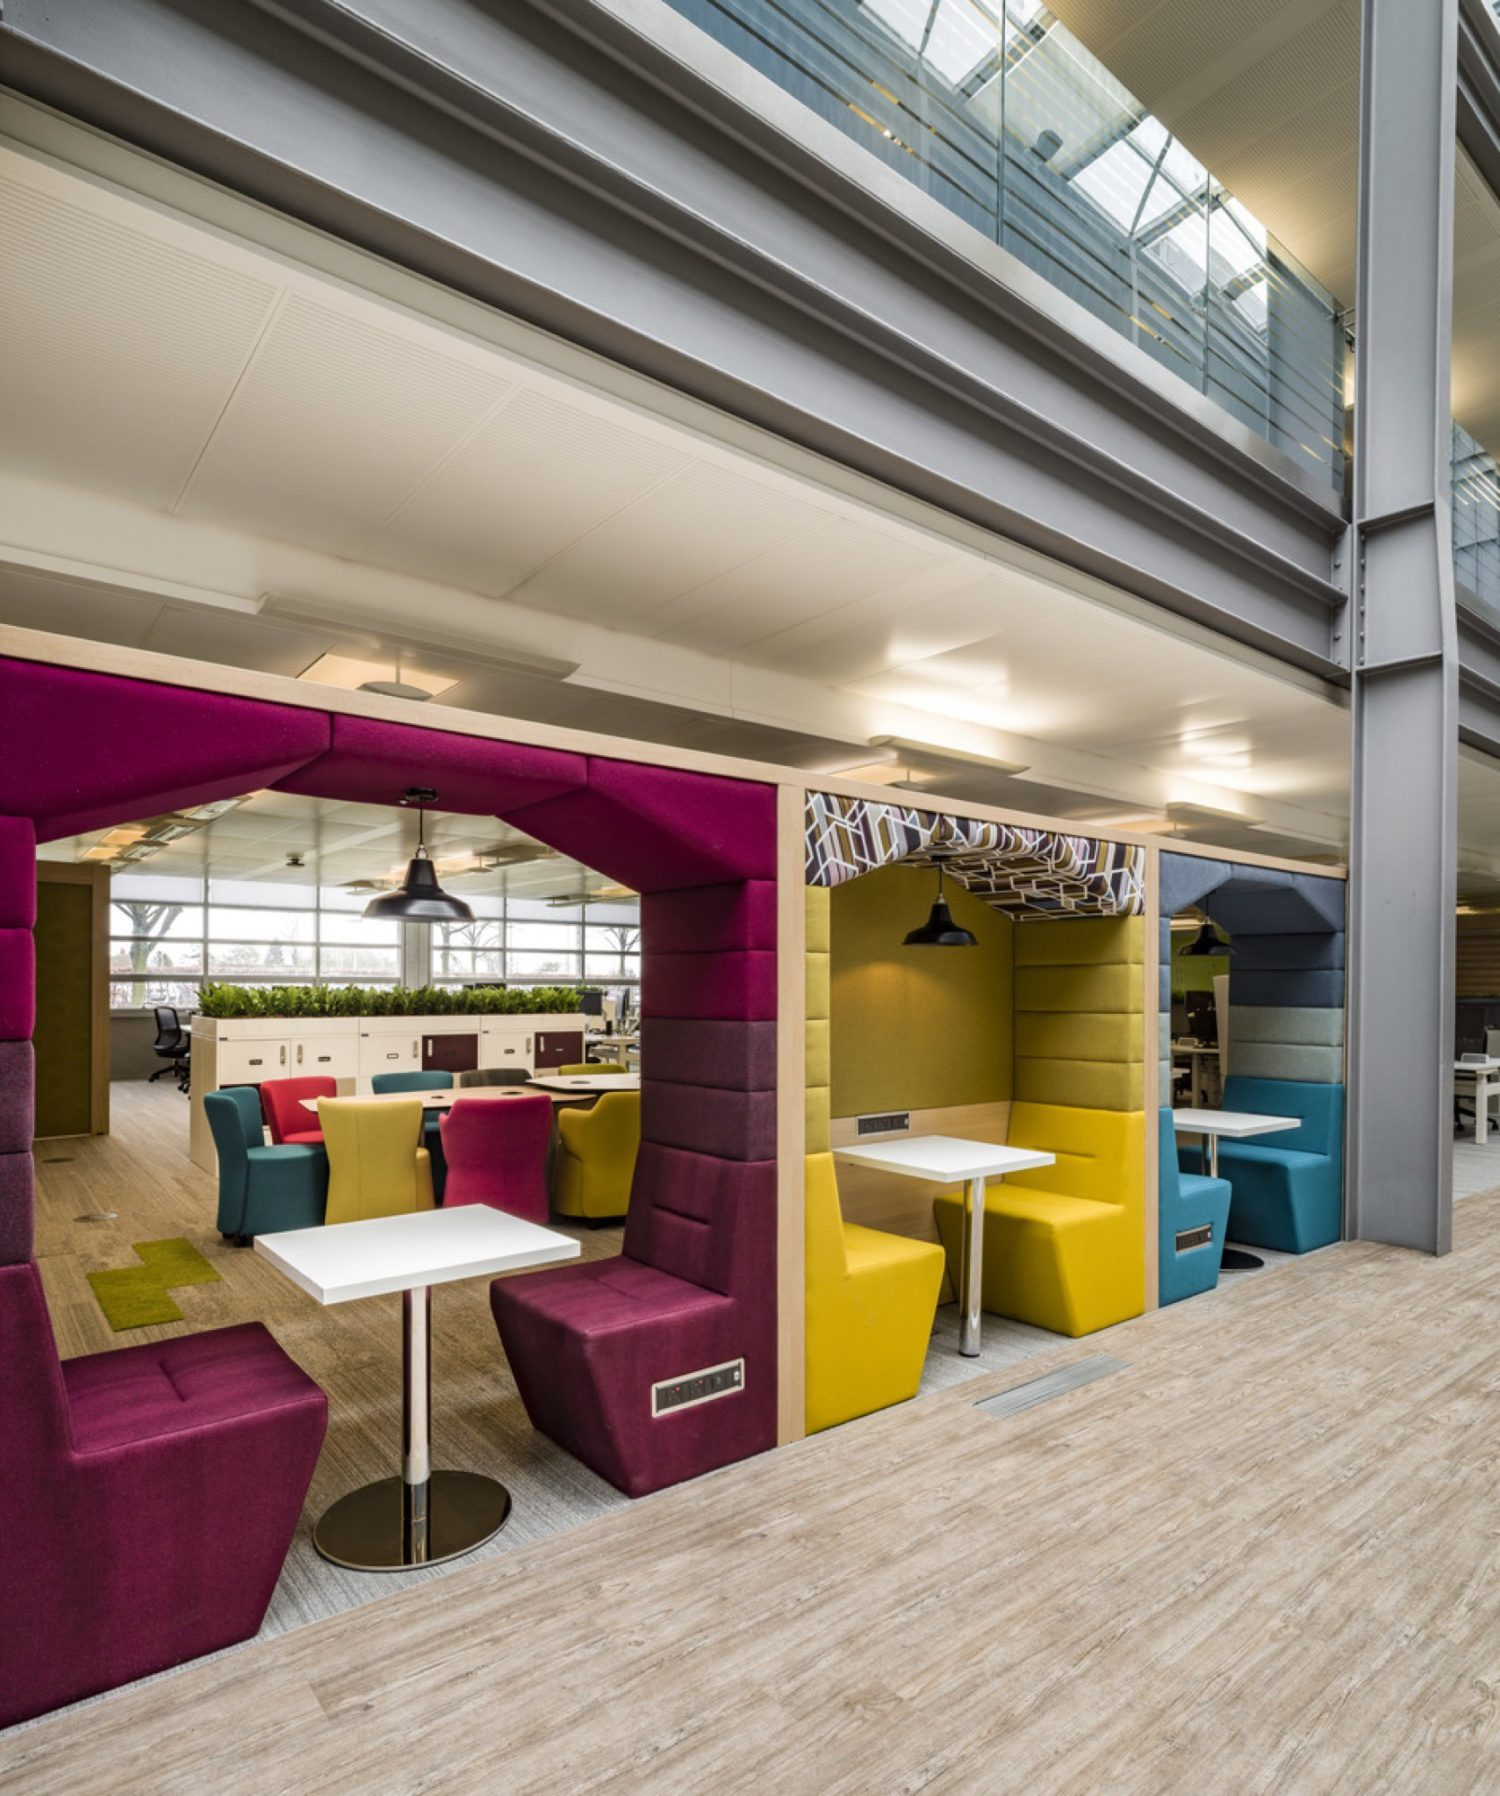 HMRC colourful office booth